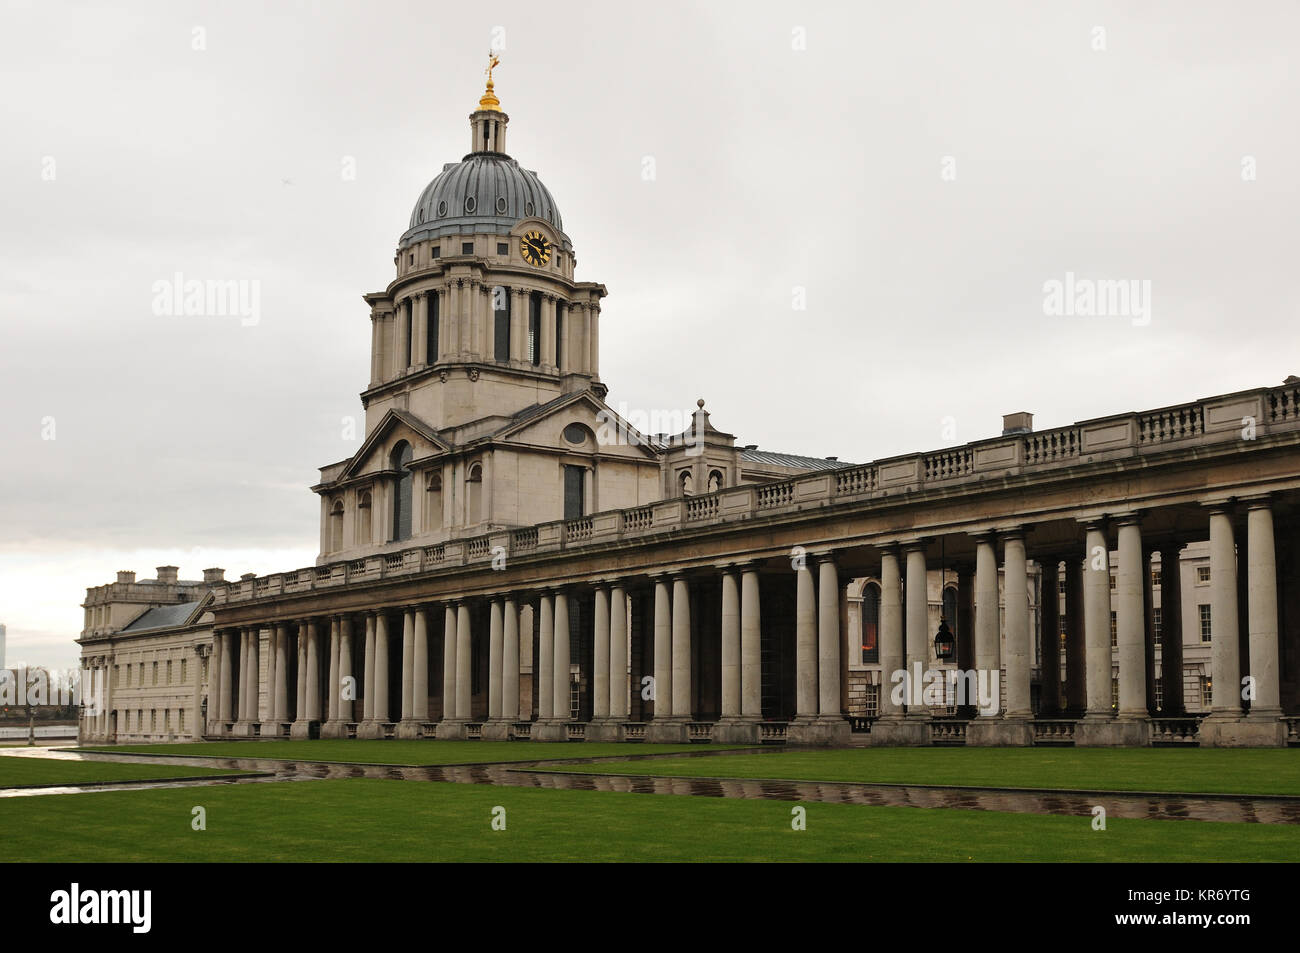 royal naval college in greenwich in london stadteil - Stock Image